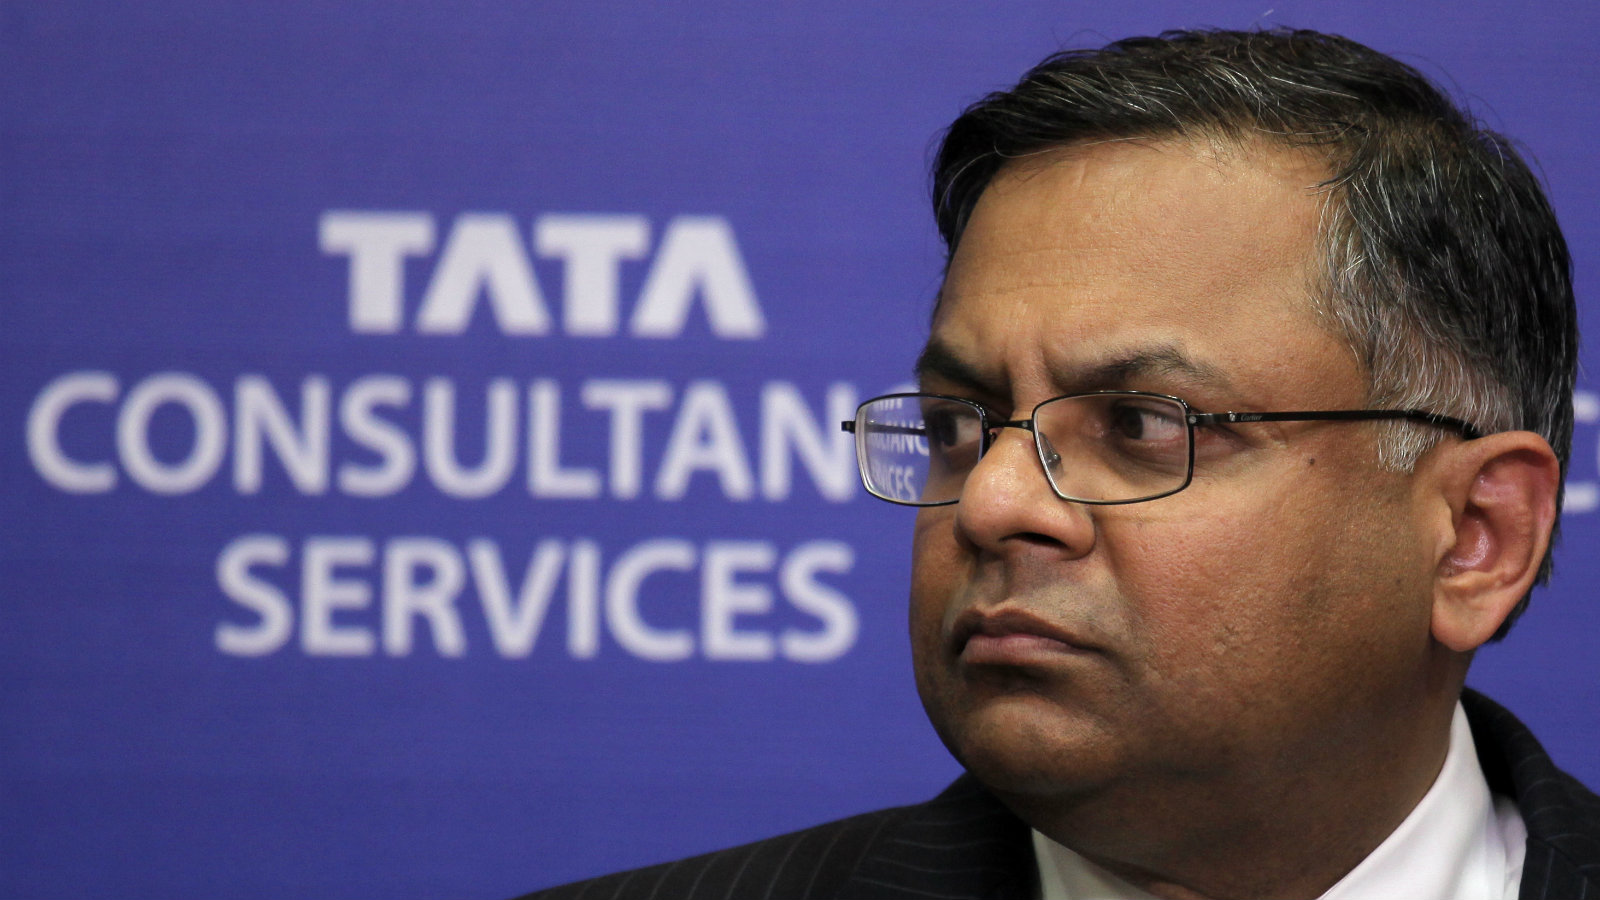 Chief Executive Officer and Managing Director of Tata Consultancy Services (TCS), Natarajan Chandrasekaran, looks on during the announcement of the fourth quarter results in Mumbai, India, 17 April 2013. The country's top software exporter, Tata Consultancy Services, reported a 22 percent rise in quarterly profit (year-on-year).